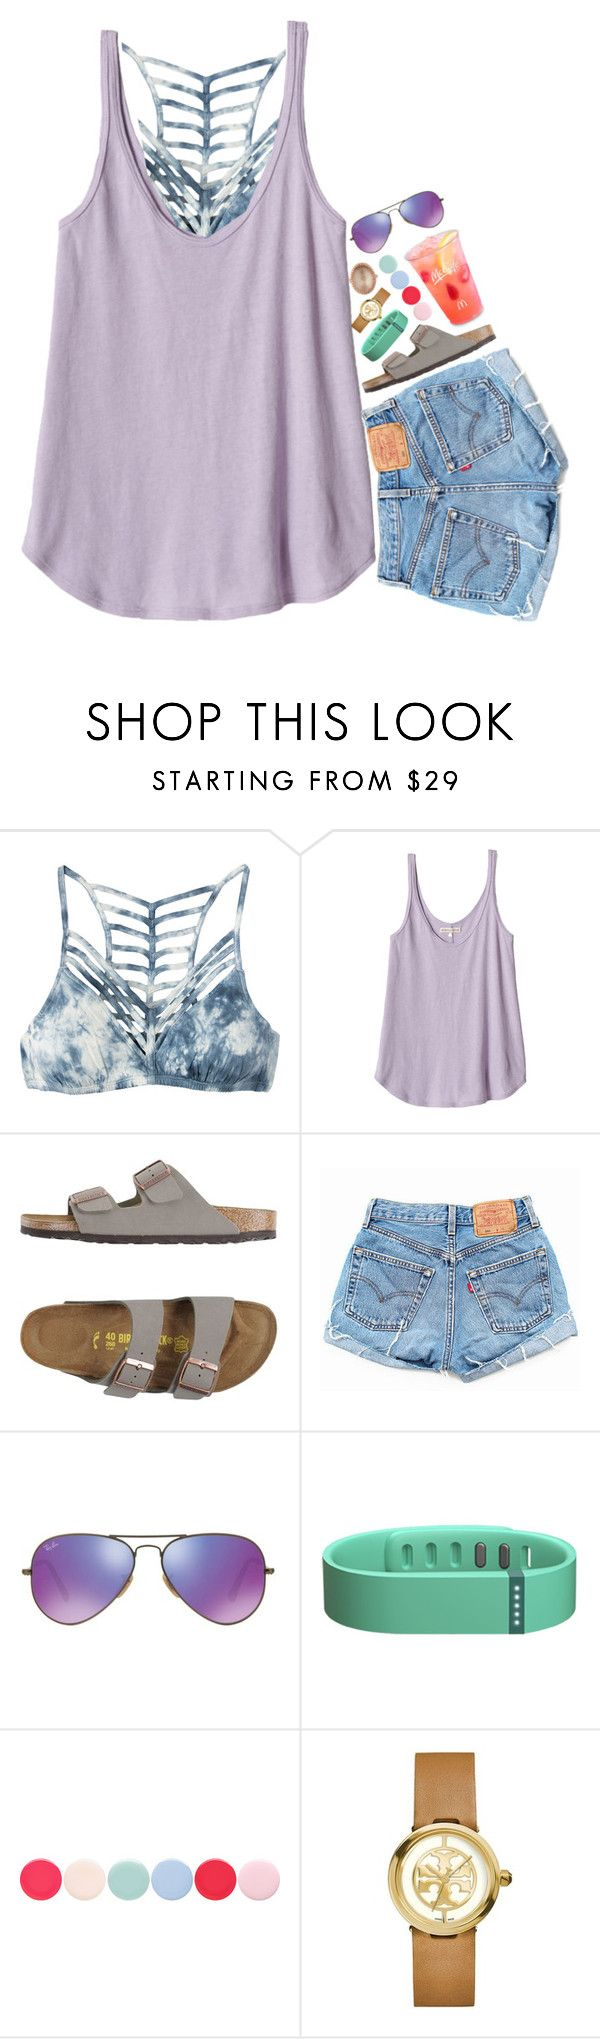 """""""birksssssss"""" by simply-lilyy ❤ liked on Polyvore featuring RVCA, Rebecca Taylor, Birkenstock, Levi's, Ray-Ban, Fitbit, Nails Inc., Tory Burch and Larkspur & Hawk"""